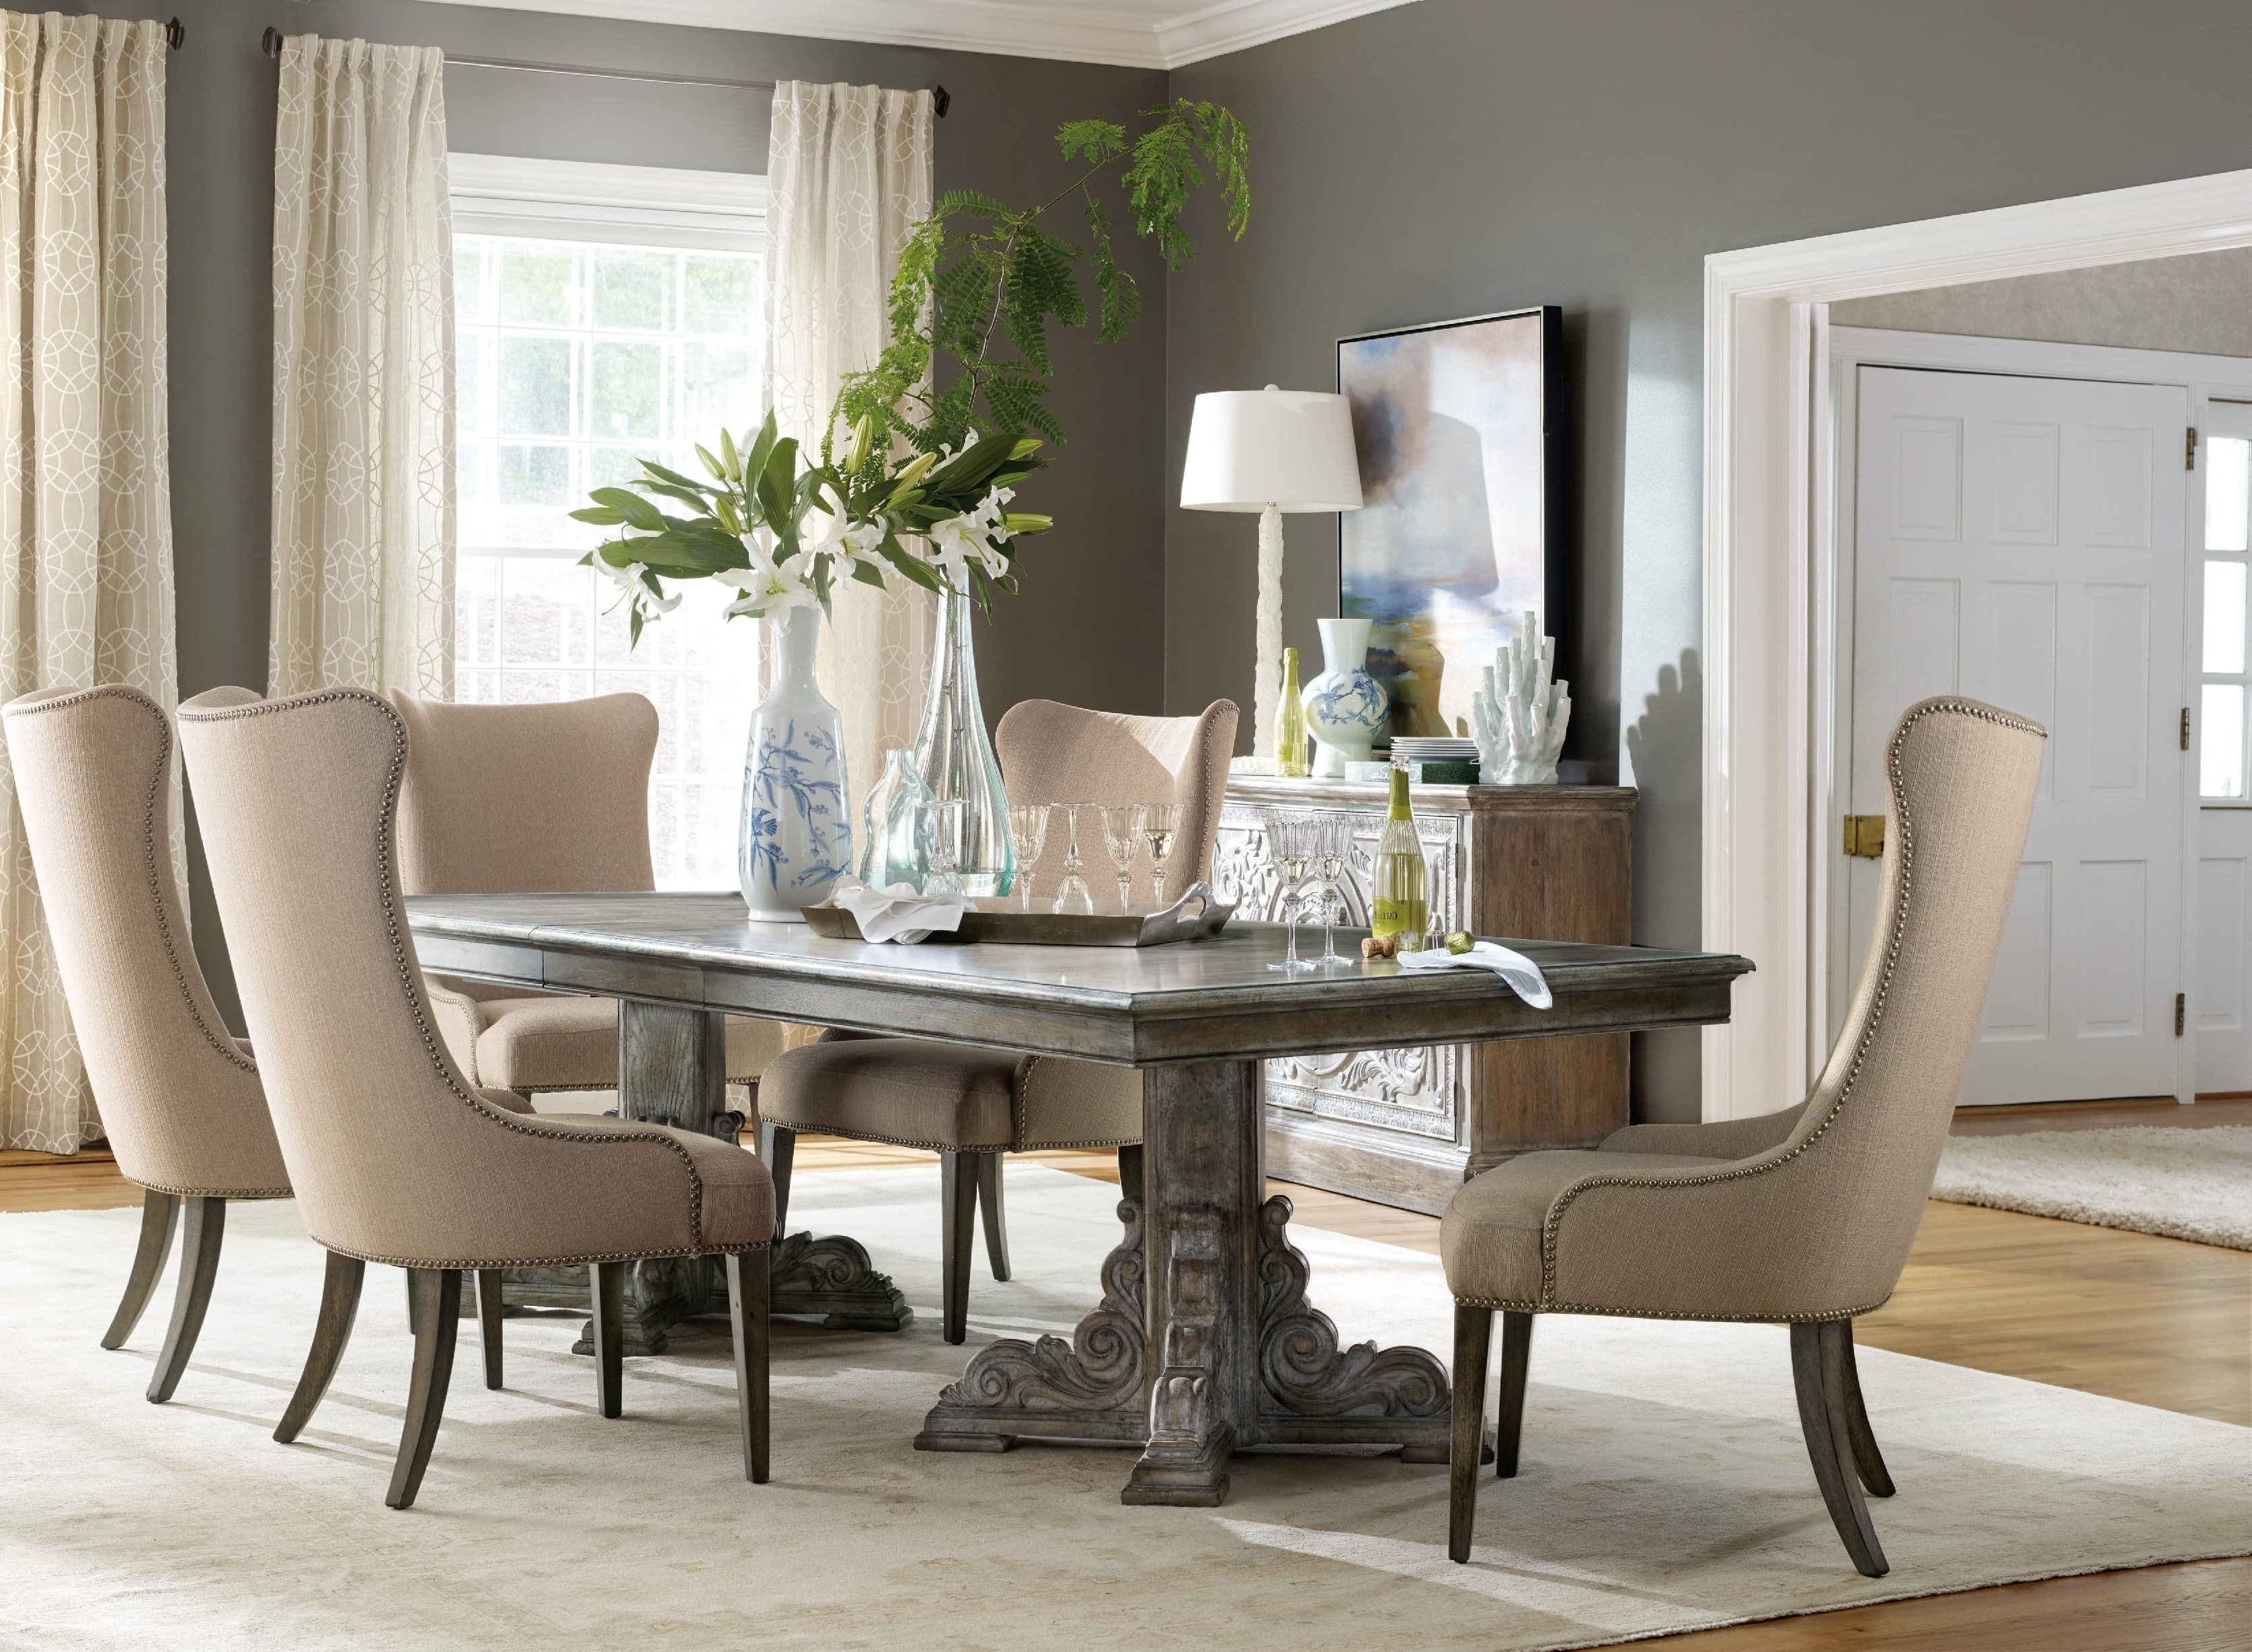 Fashionable Extendable Dining Table Sets Intended For Hooker Furniture True Vintage 3 Piece Extendable Dining Table Set (View 7 of 25)